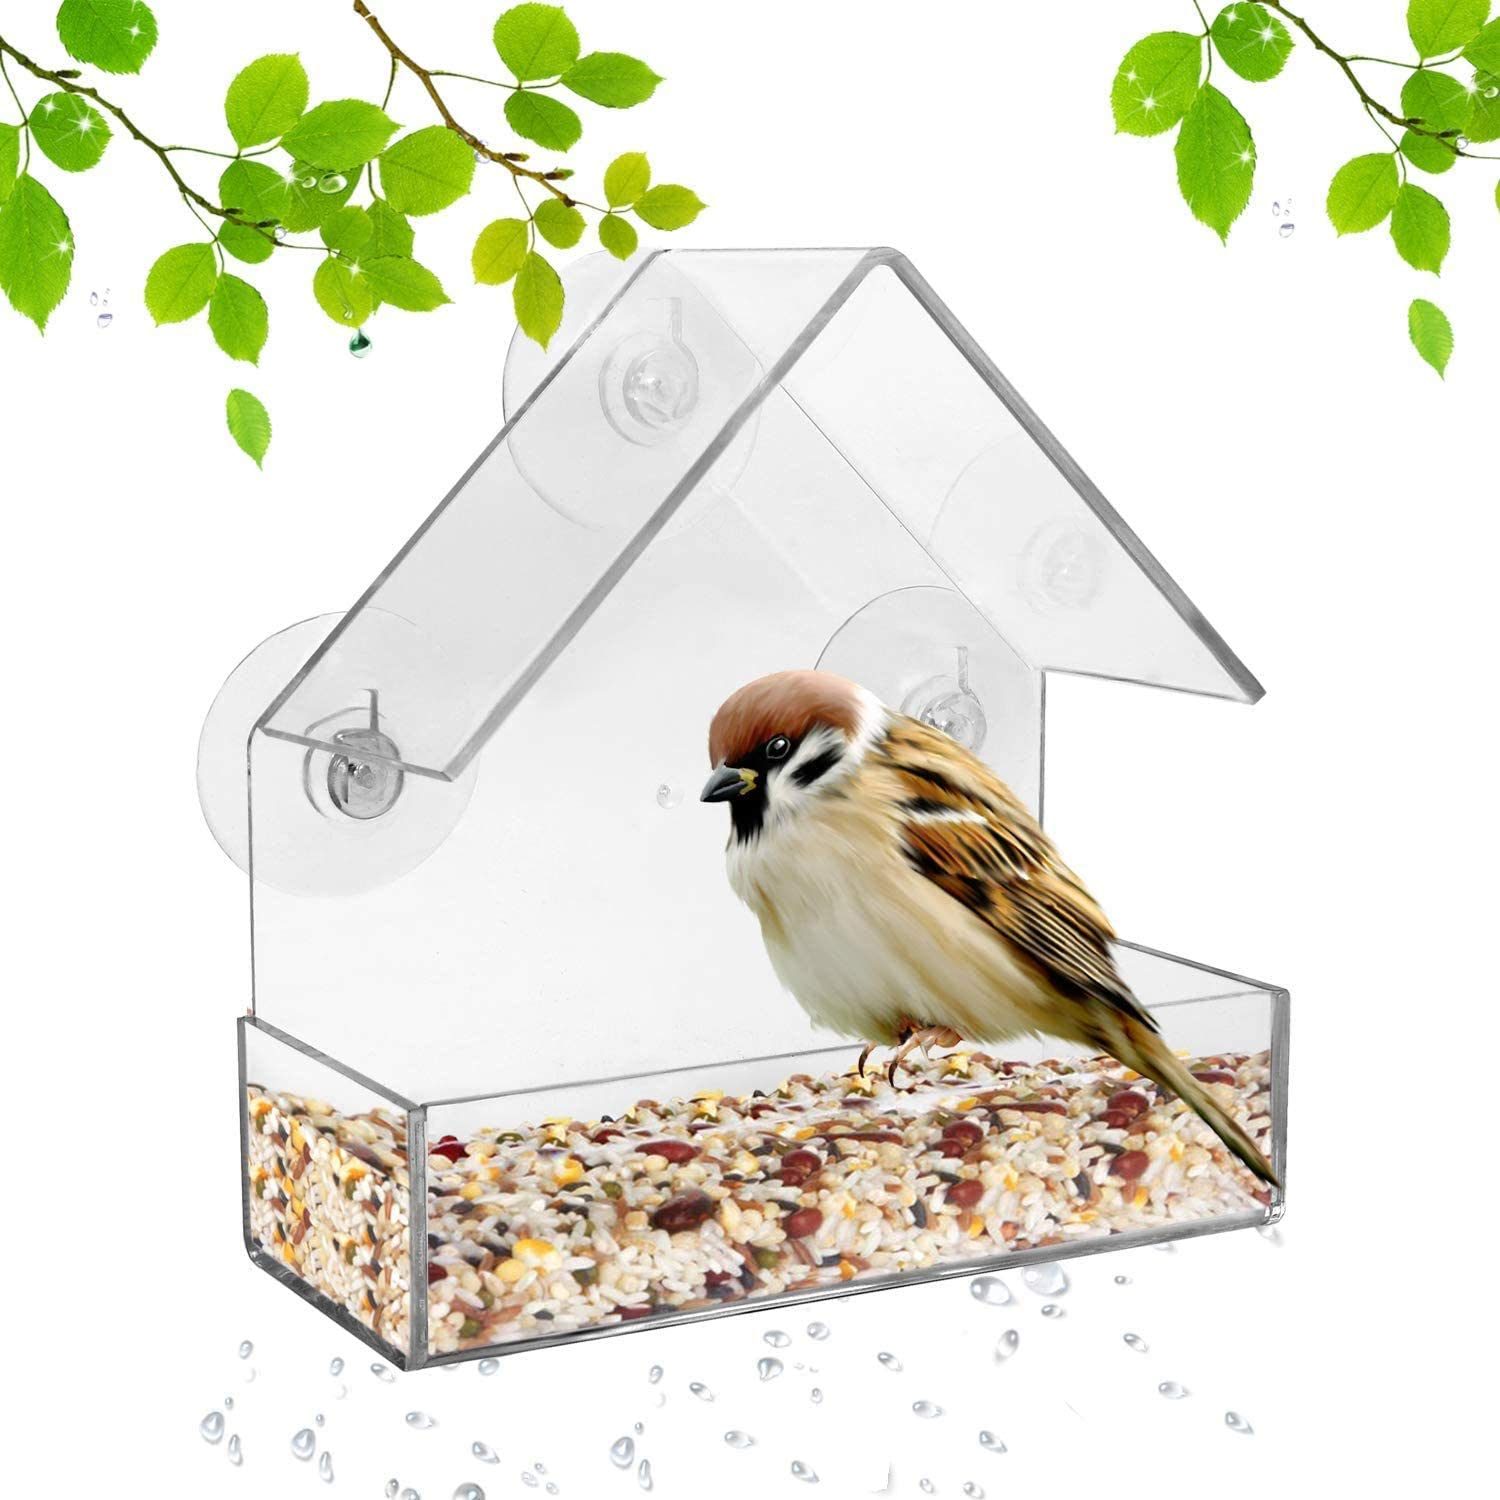 Parkland Clear Acrylic Glass Window Bird Feeder Table Seed Peanut Tray Hanging Perspex Clear For Transparent Viewing Small Compact With 3 Suctions Cups Amazon Co Uk Garden Outdoors